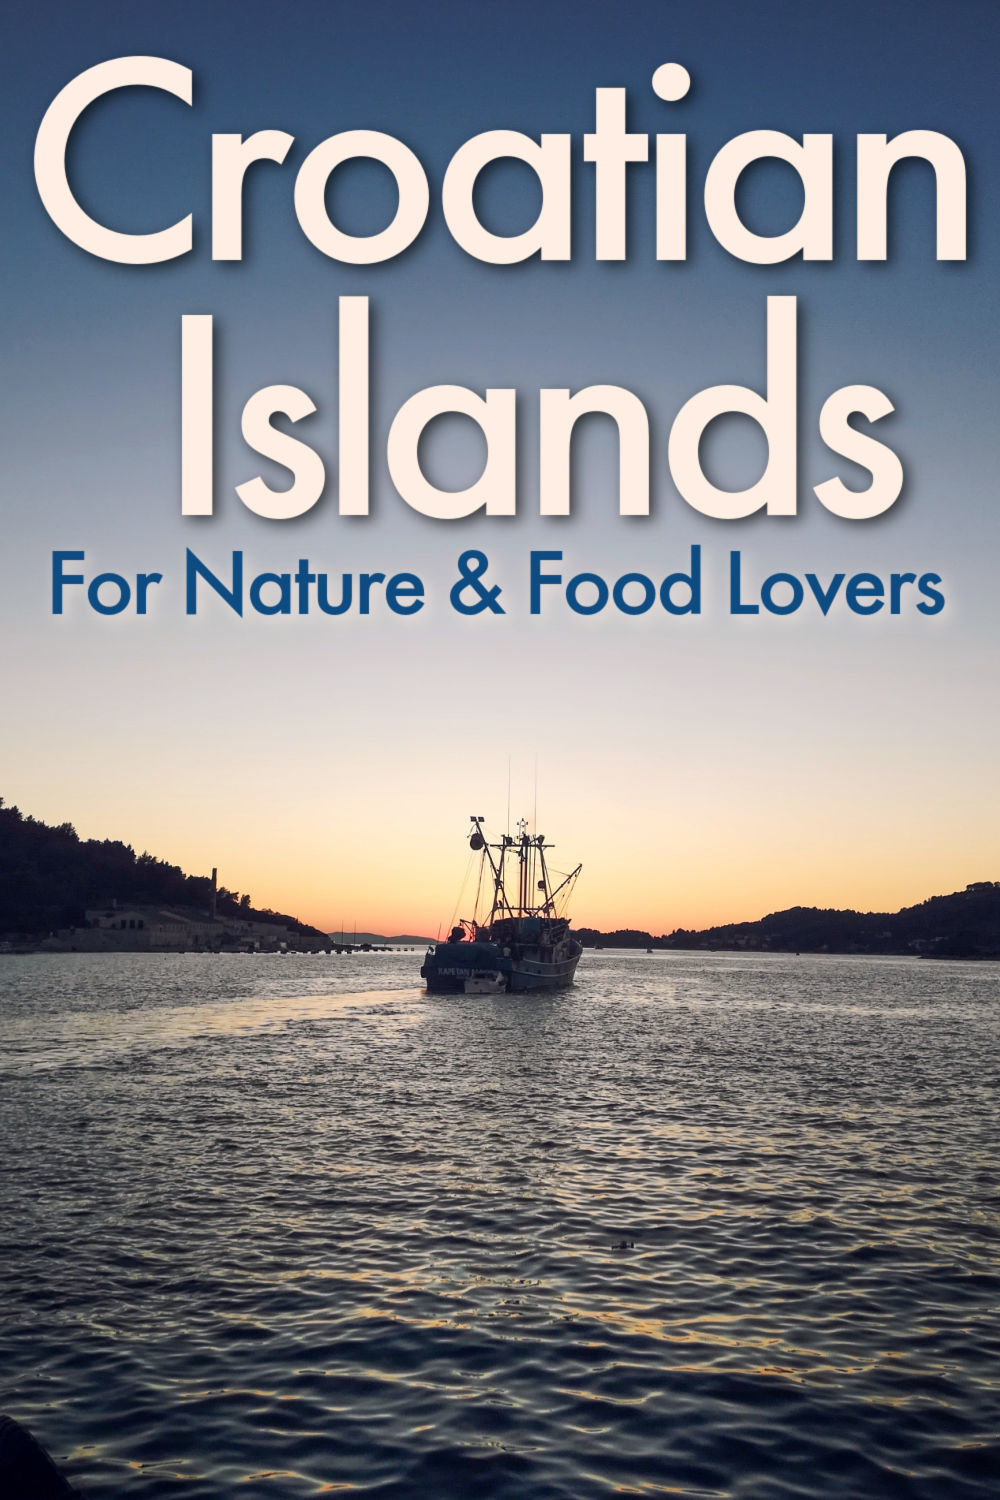 What to eat and what to do on the best islands in Croatia. Here are 6 of the best Croatian islands to try local recipes, unique flavors, and wine. Croatia is famous for its ancient towns and stunning nature, but if you want to experience the best of Croatia, you must add its traditional food to your itinerary. Croatian cuisine is delicious, and it offers great variety for all tastes. If you are planning a visit to Croatia, read this guide and be sure to enjoy the best beaches in Croatia paired with the best Croatian food.